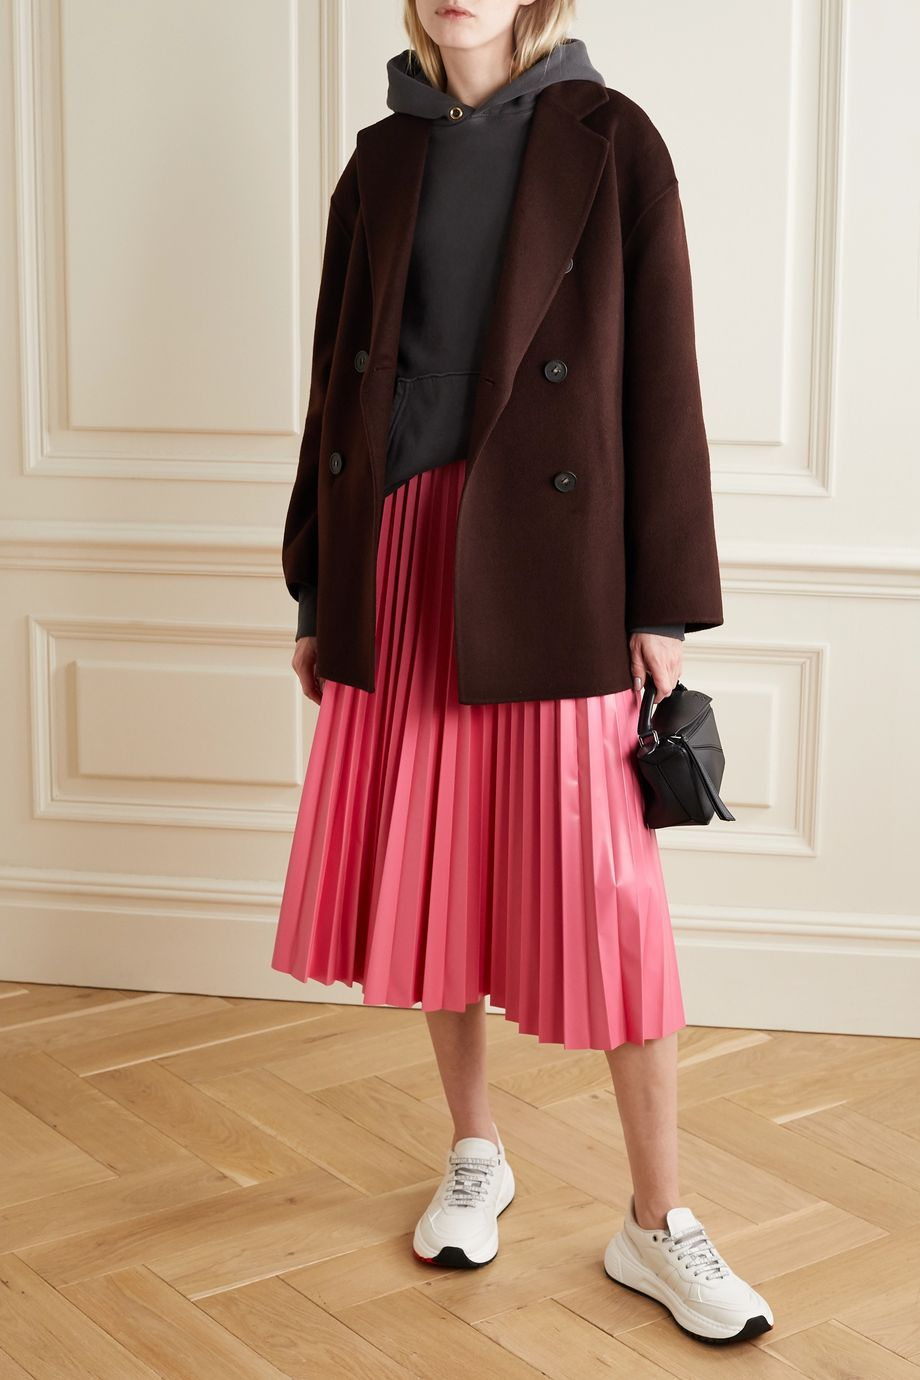 Acne Studios Double-breasted wool coat